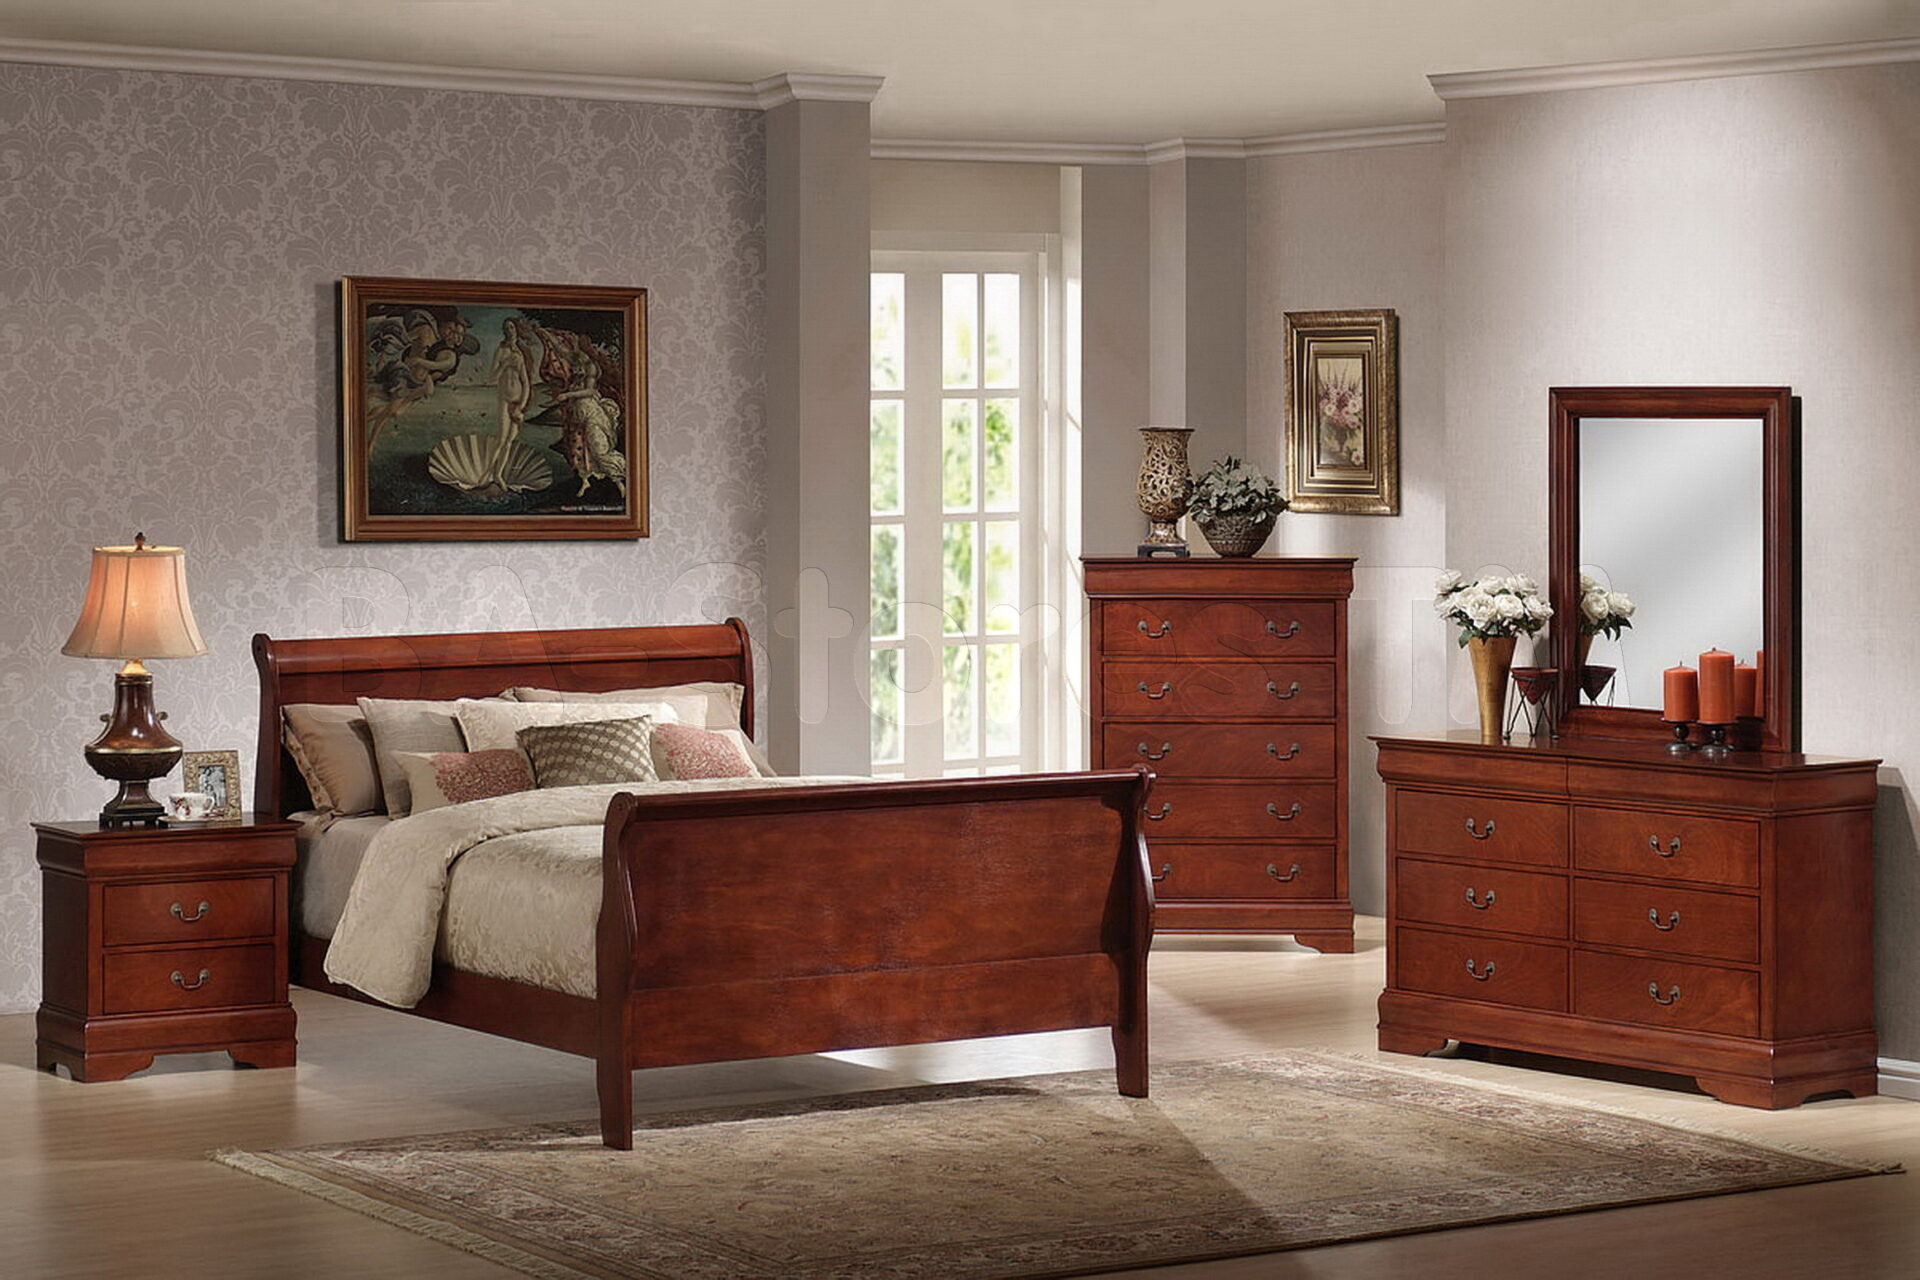 Wooden furniture tips pricing shopping Wooden bed furniture